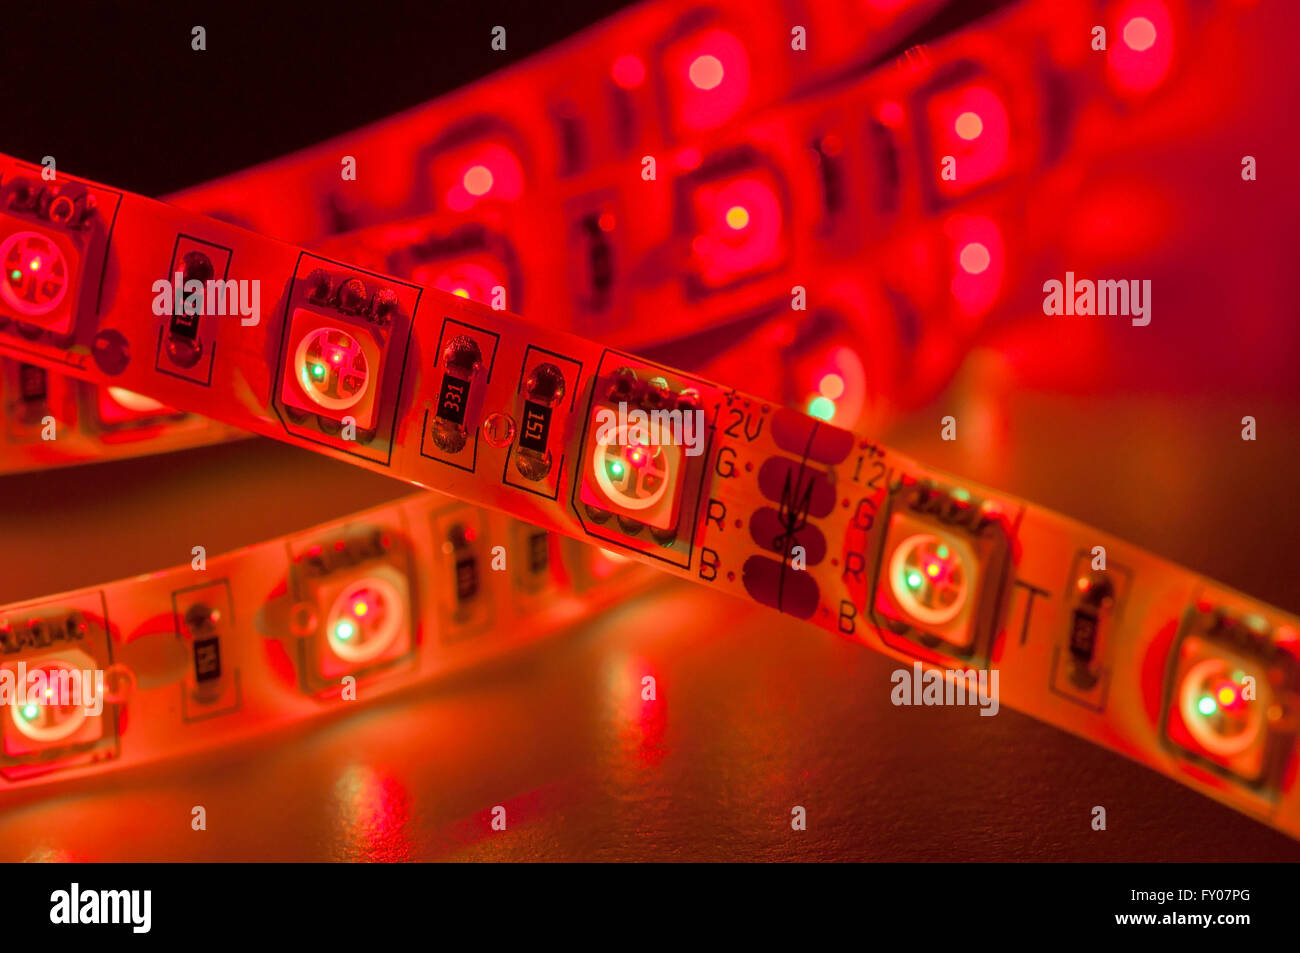 Close up red led light strip rgb stock photo royalty free image close up red led light strip rgb mozeypictures Image collections